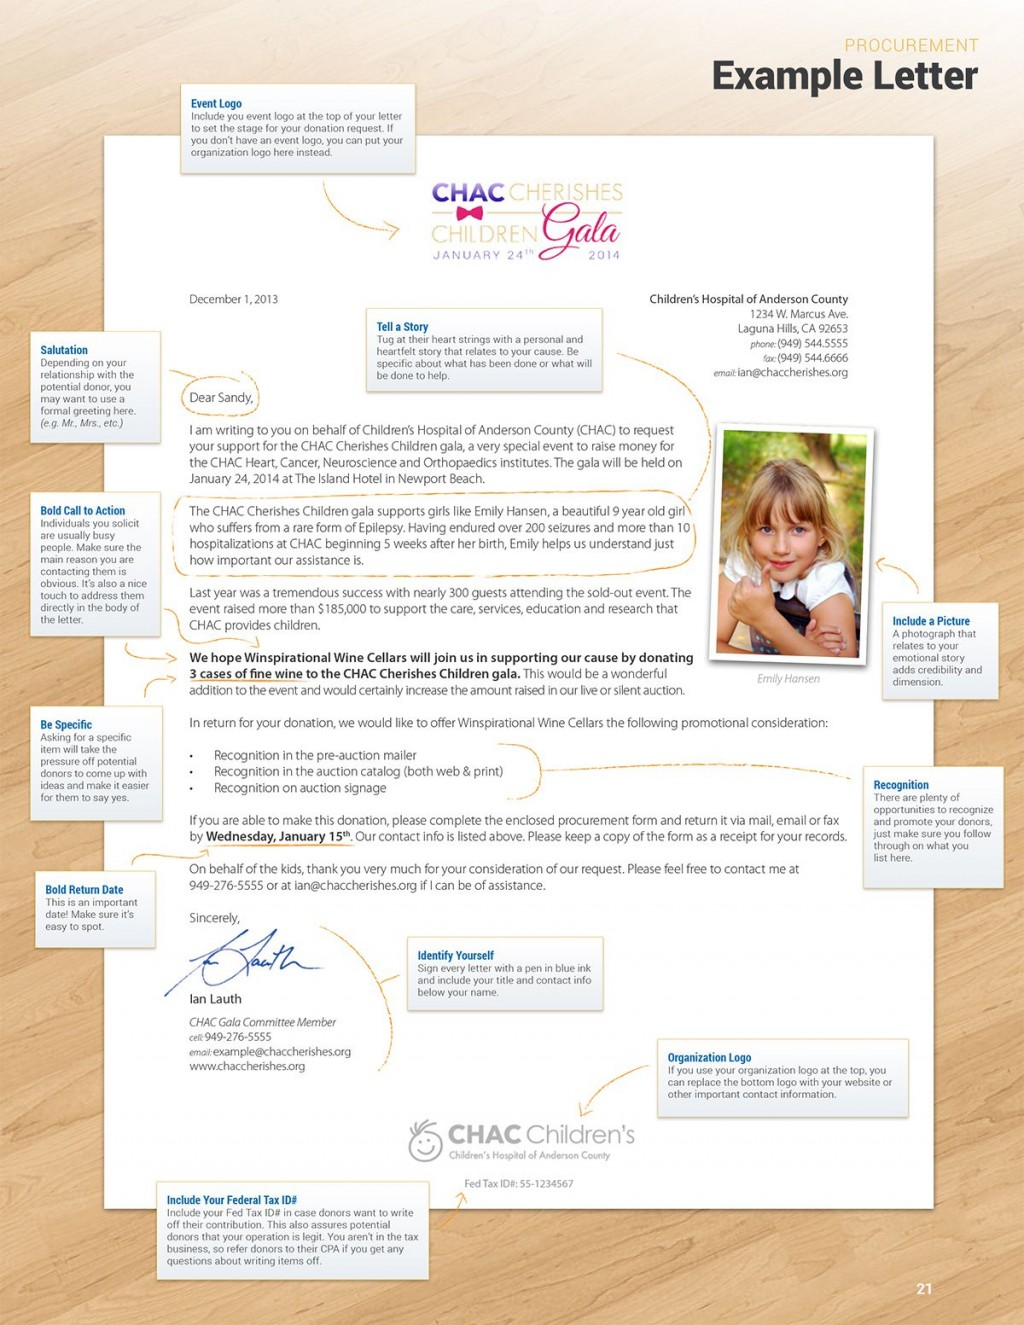 008 Amazing Silent Auction Donation Certificate Template Image Large